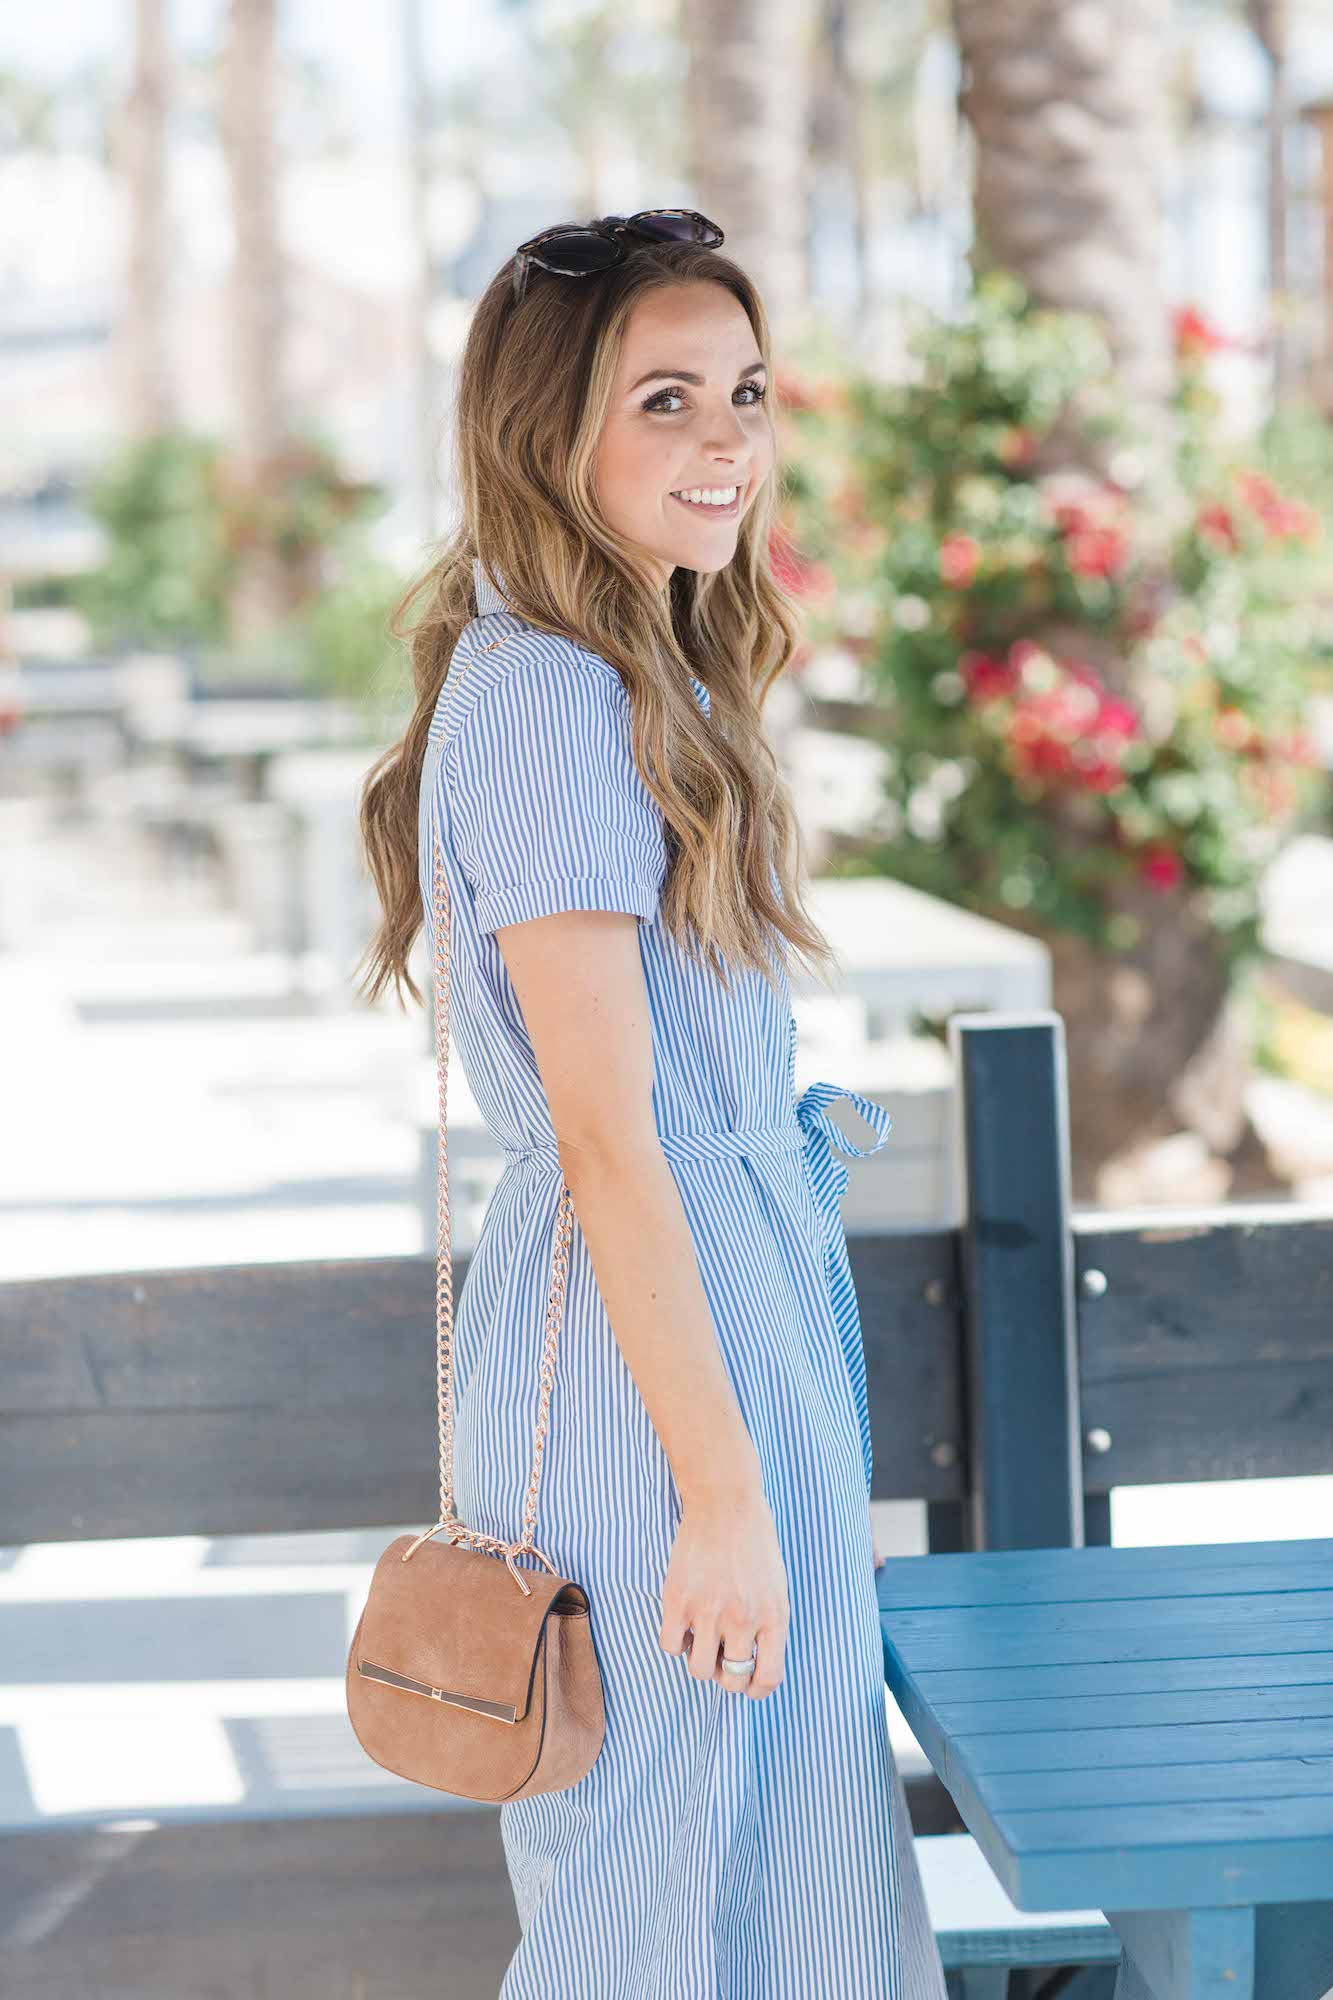 Merrick's Art Blue Shirtdress